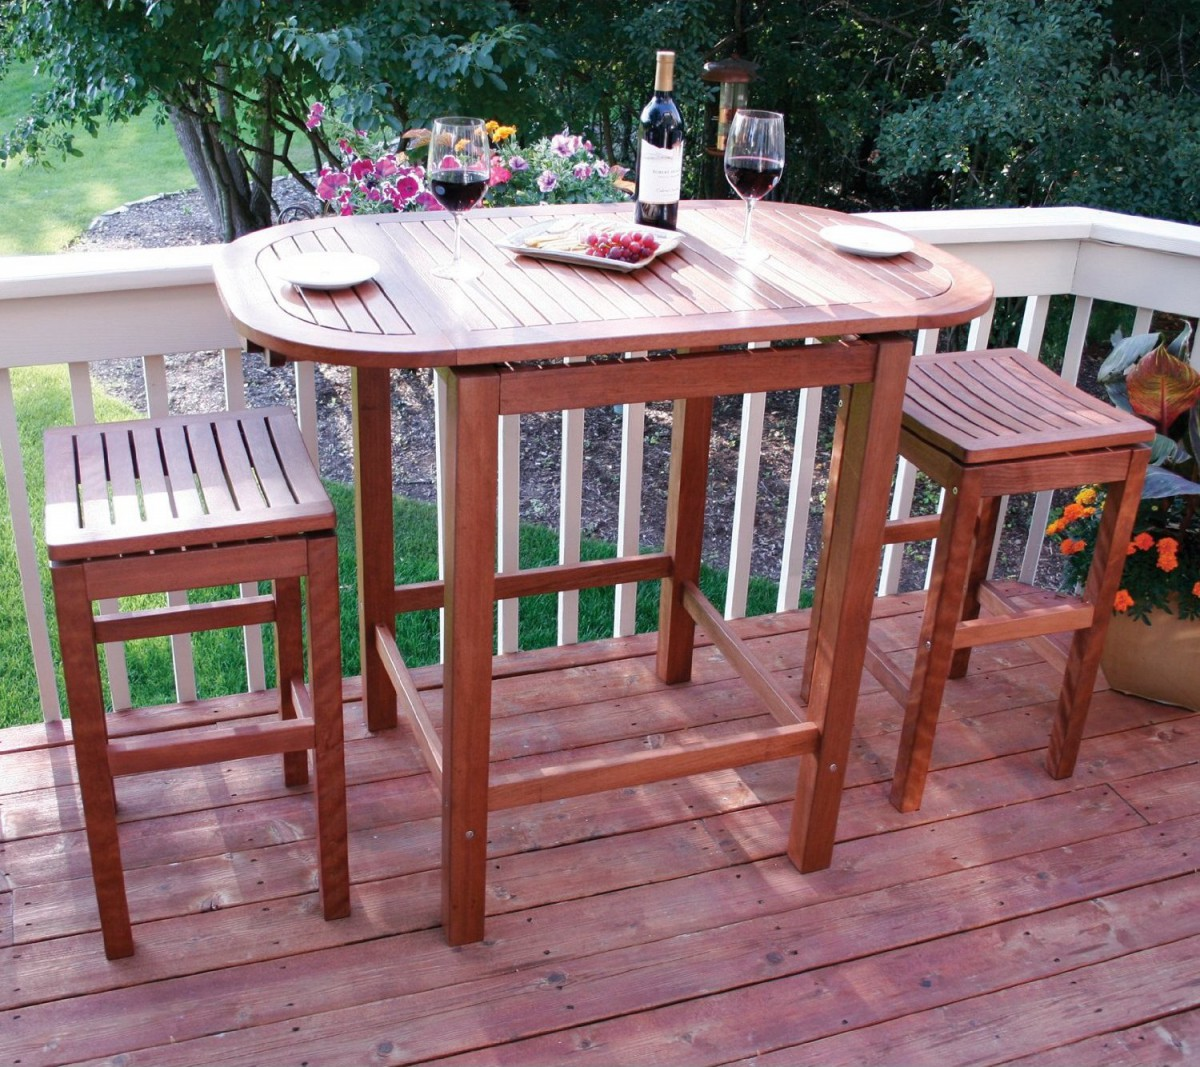 Outdoor Interiors 2-4-6 Folding Pub Table